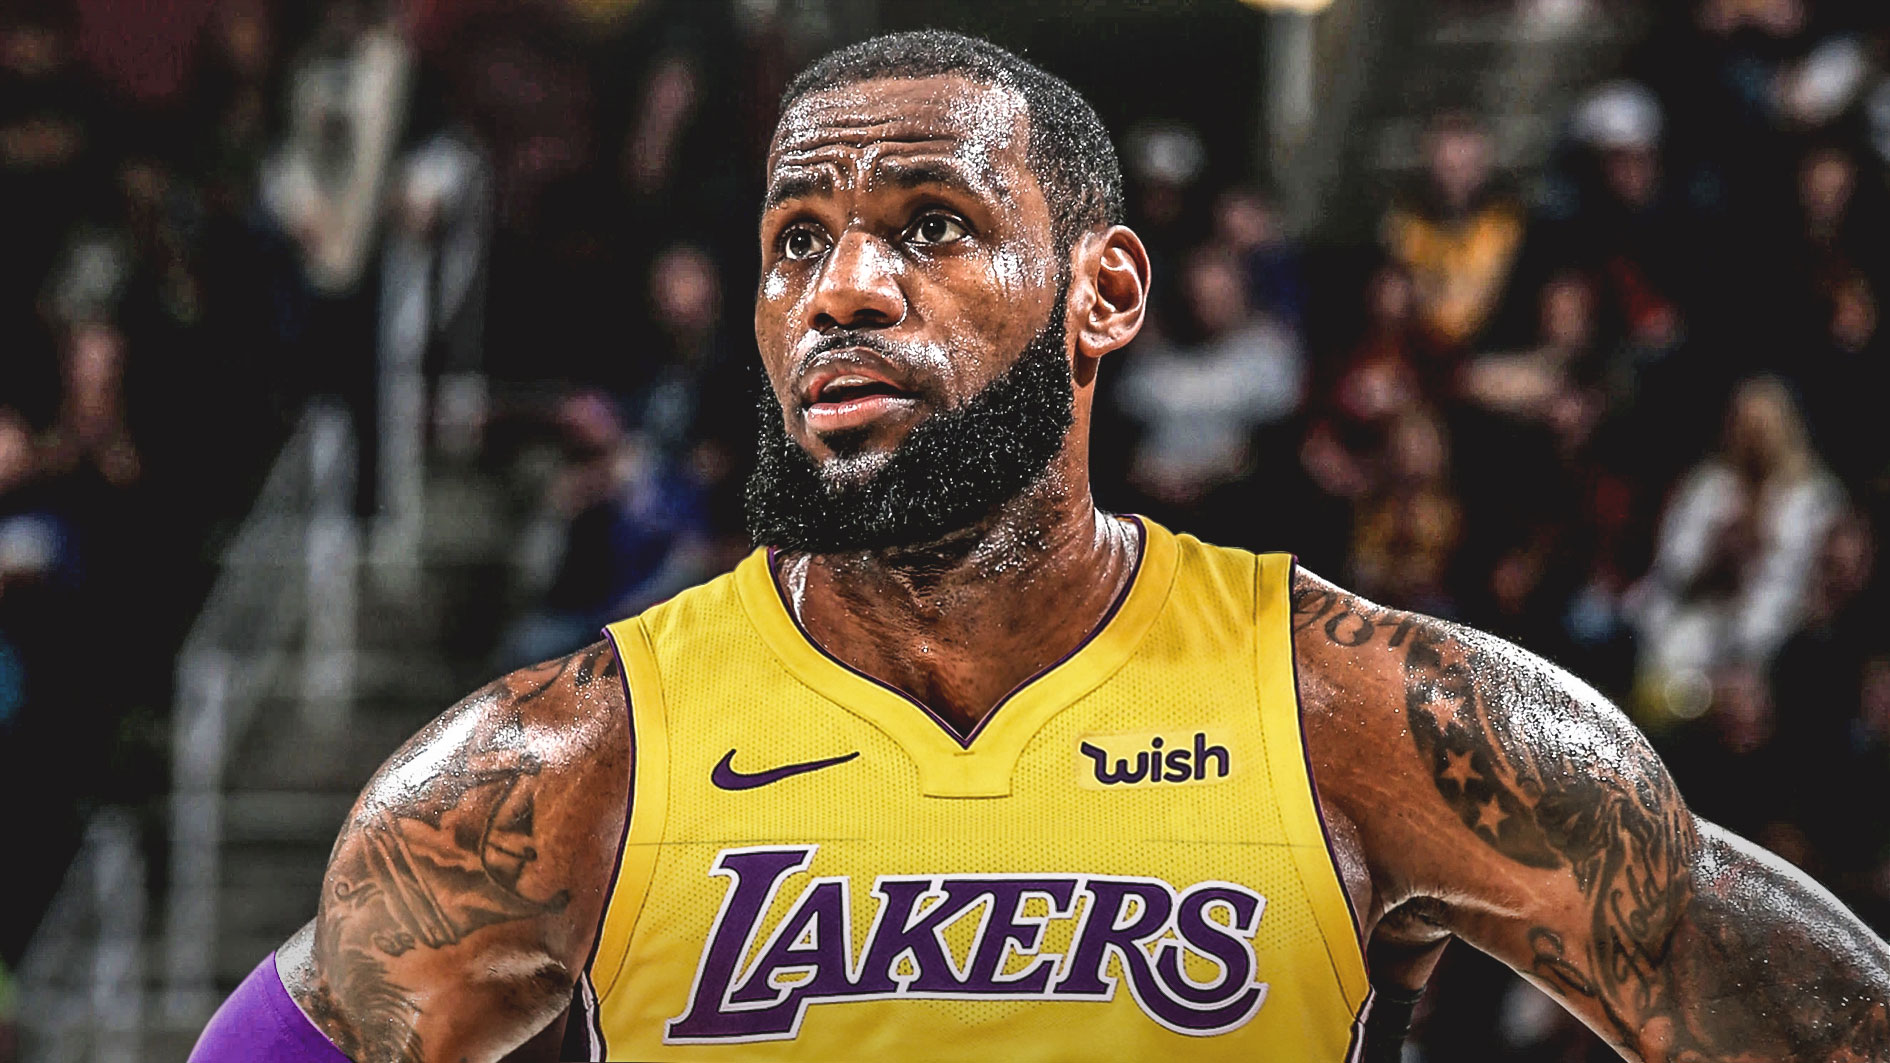 LeBron James to Sign with LA Lakers